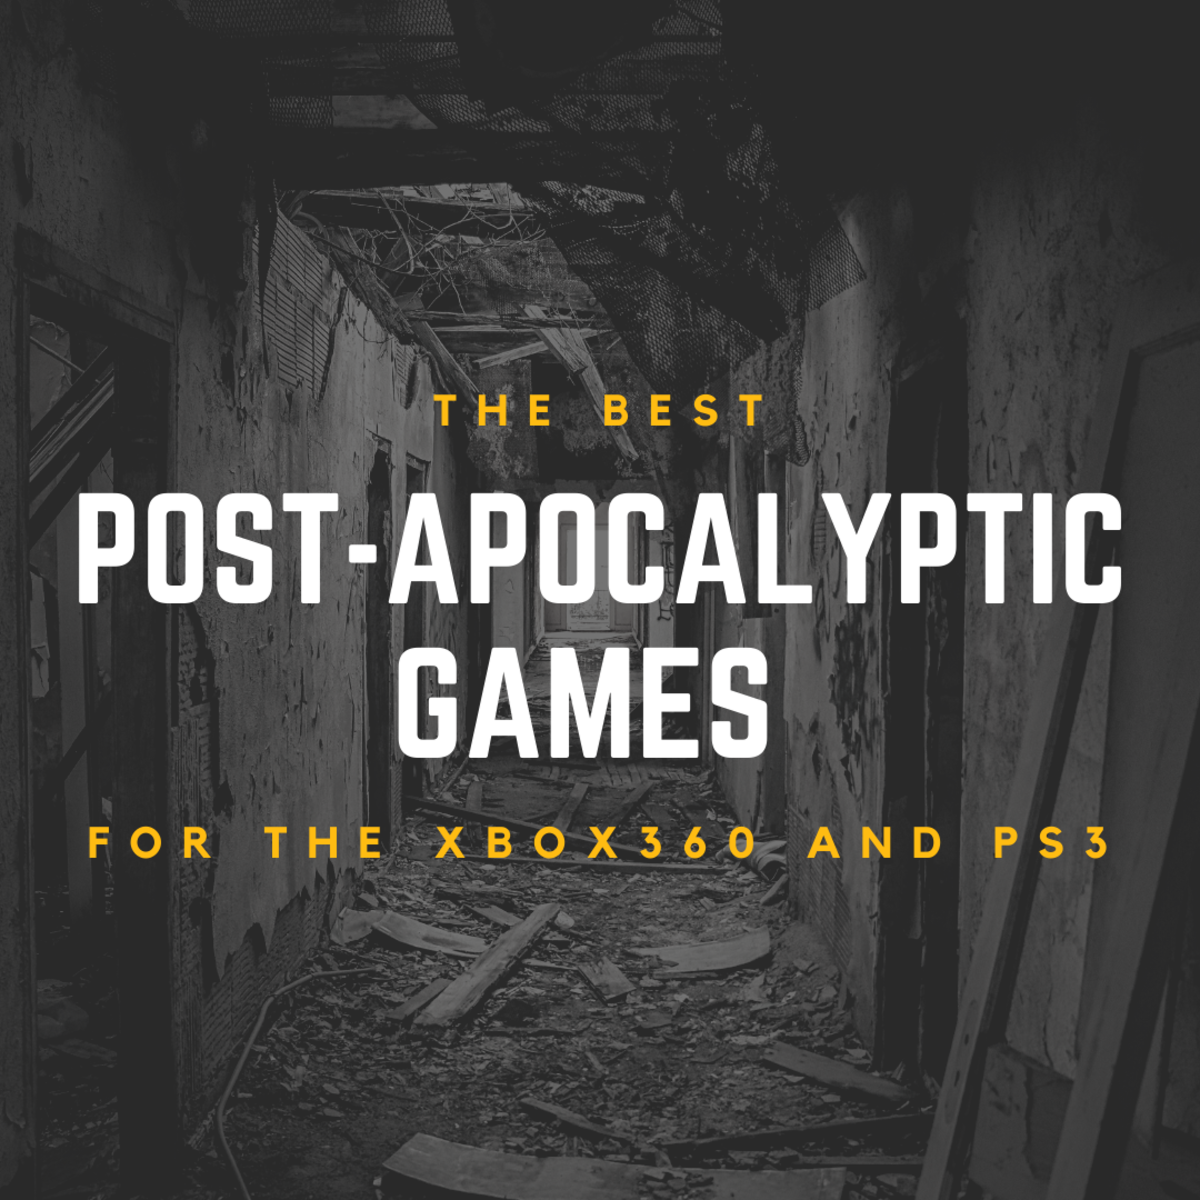 These games will transport you to a realistic post-apocalyptic world!